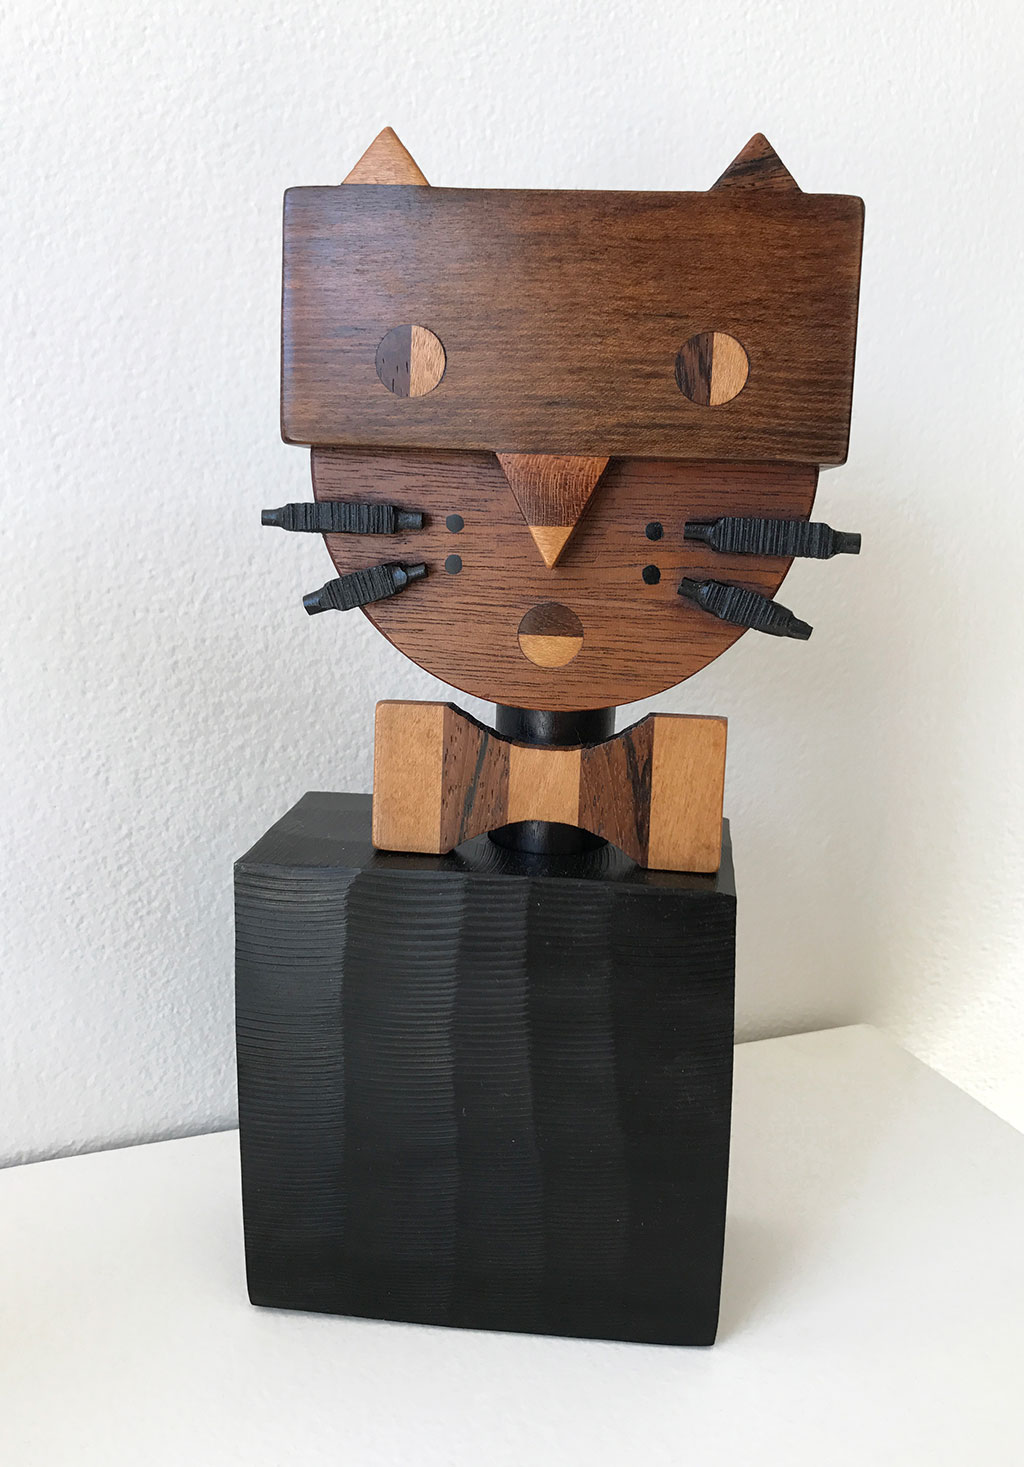 Made to Play, Pamela Weir-Quiton, Kitty Face, 1984, Craft in America